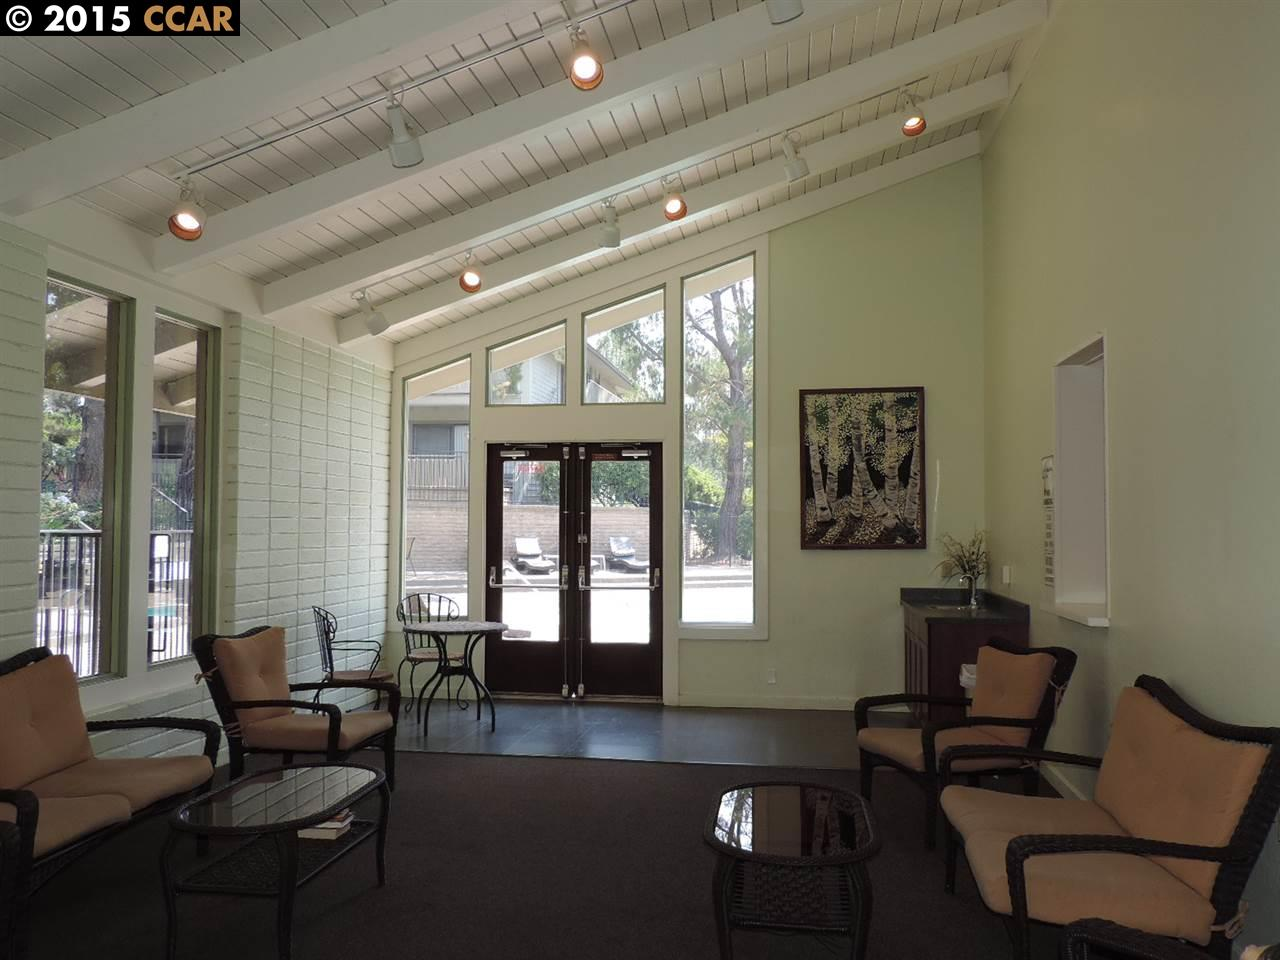 Additional photo for property listing at 1437 Marchbanks Drive  Walnut Creek, California 94598 United States